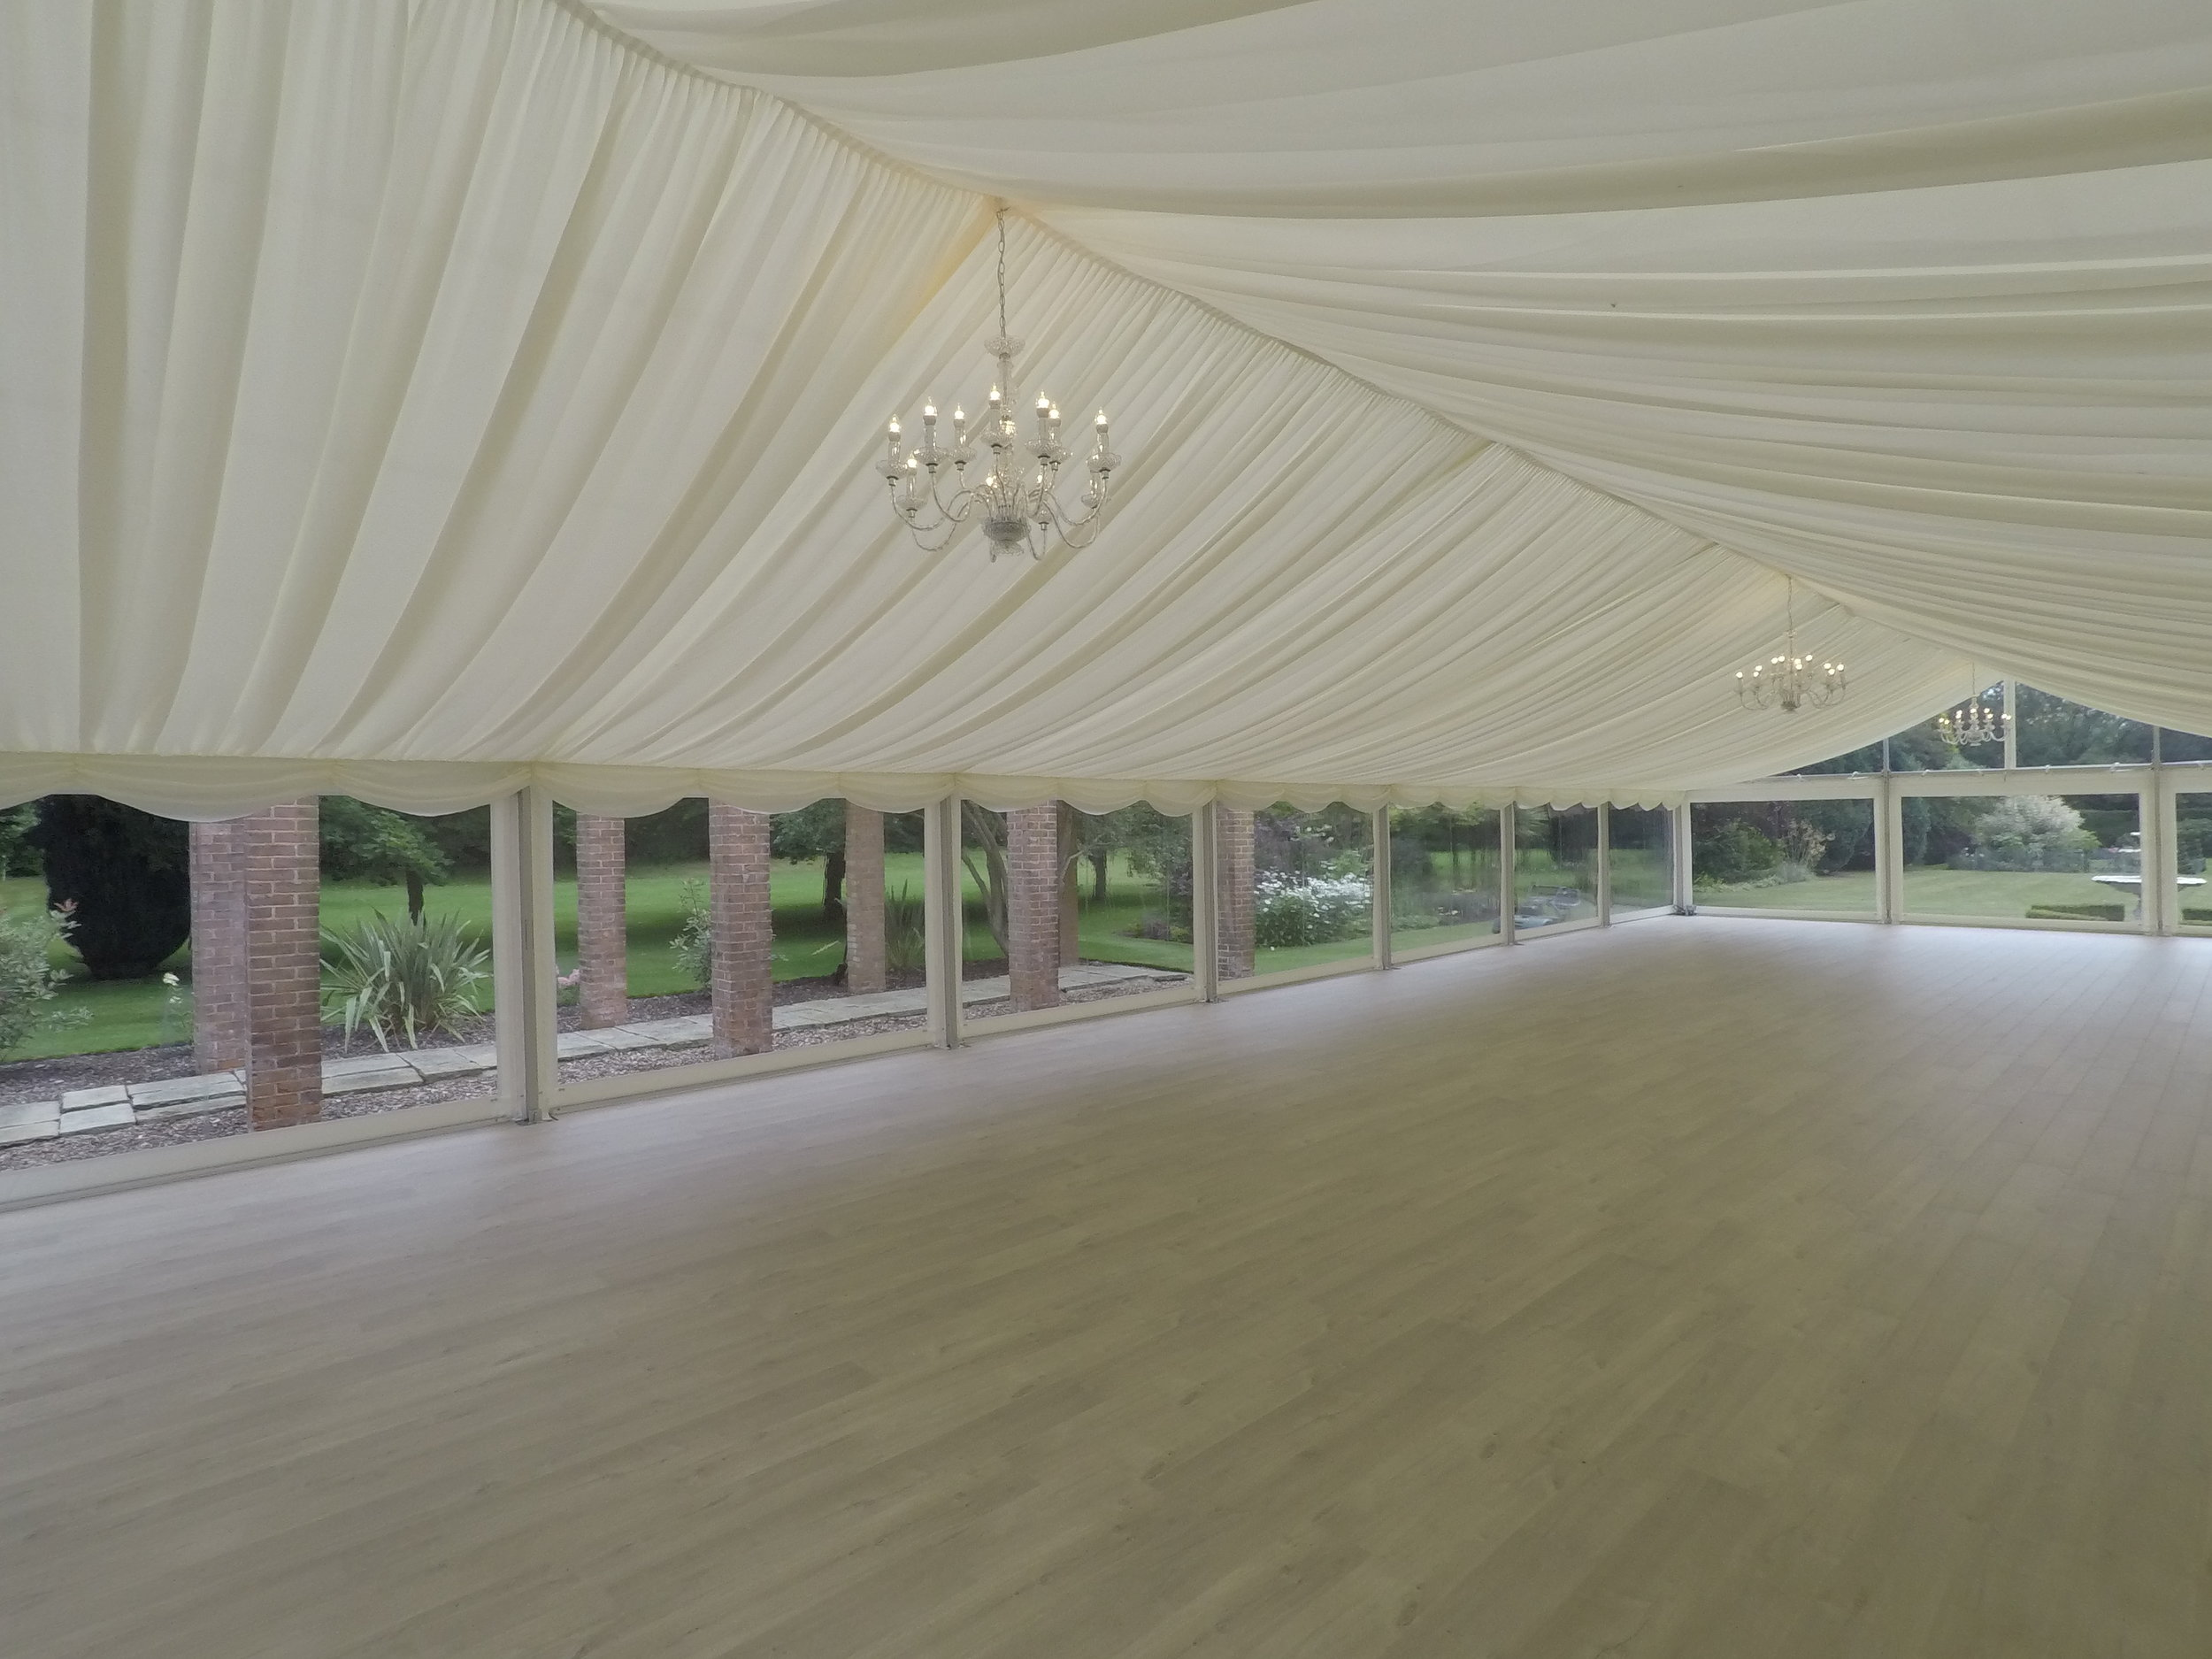 Pleated Linings - Pleated linings are what we provide as standard linings and these are currently available in ivory or white. These are what dress the ceiling and walls of the interior of the marquee, covering the internal metal work and PVC.